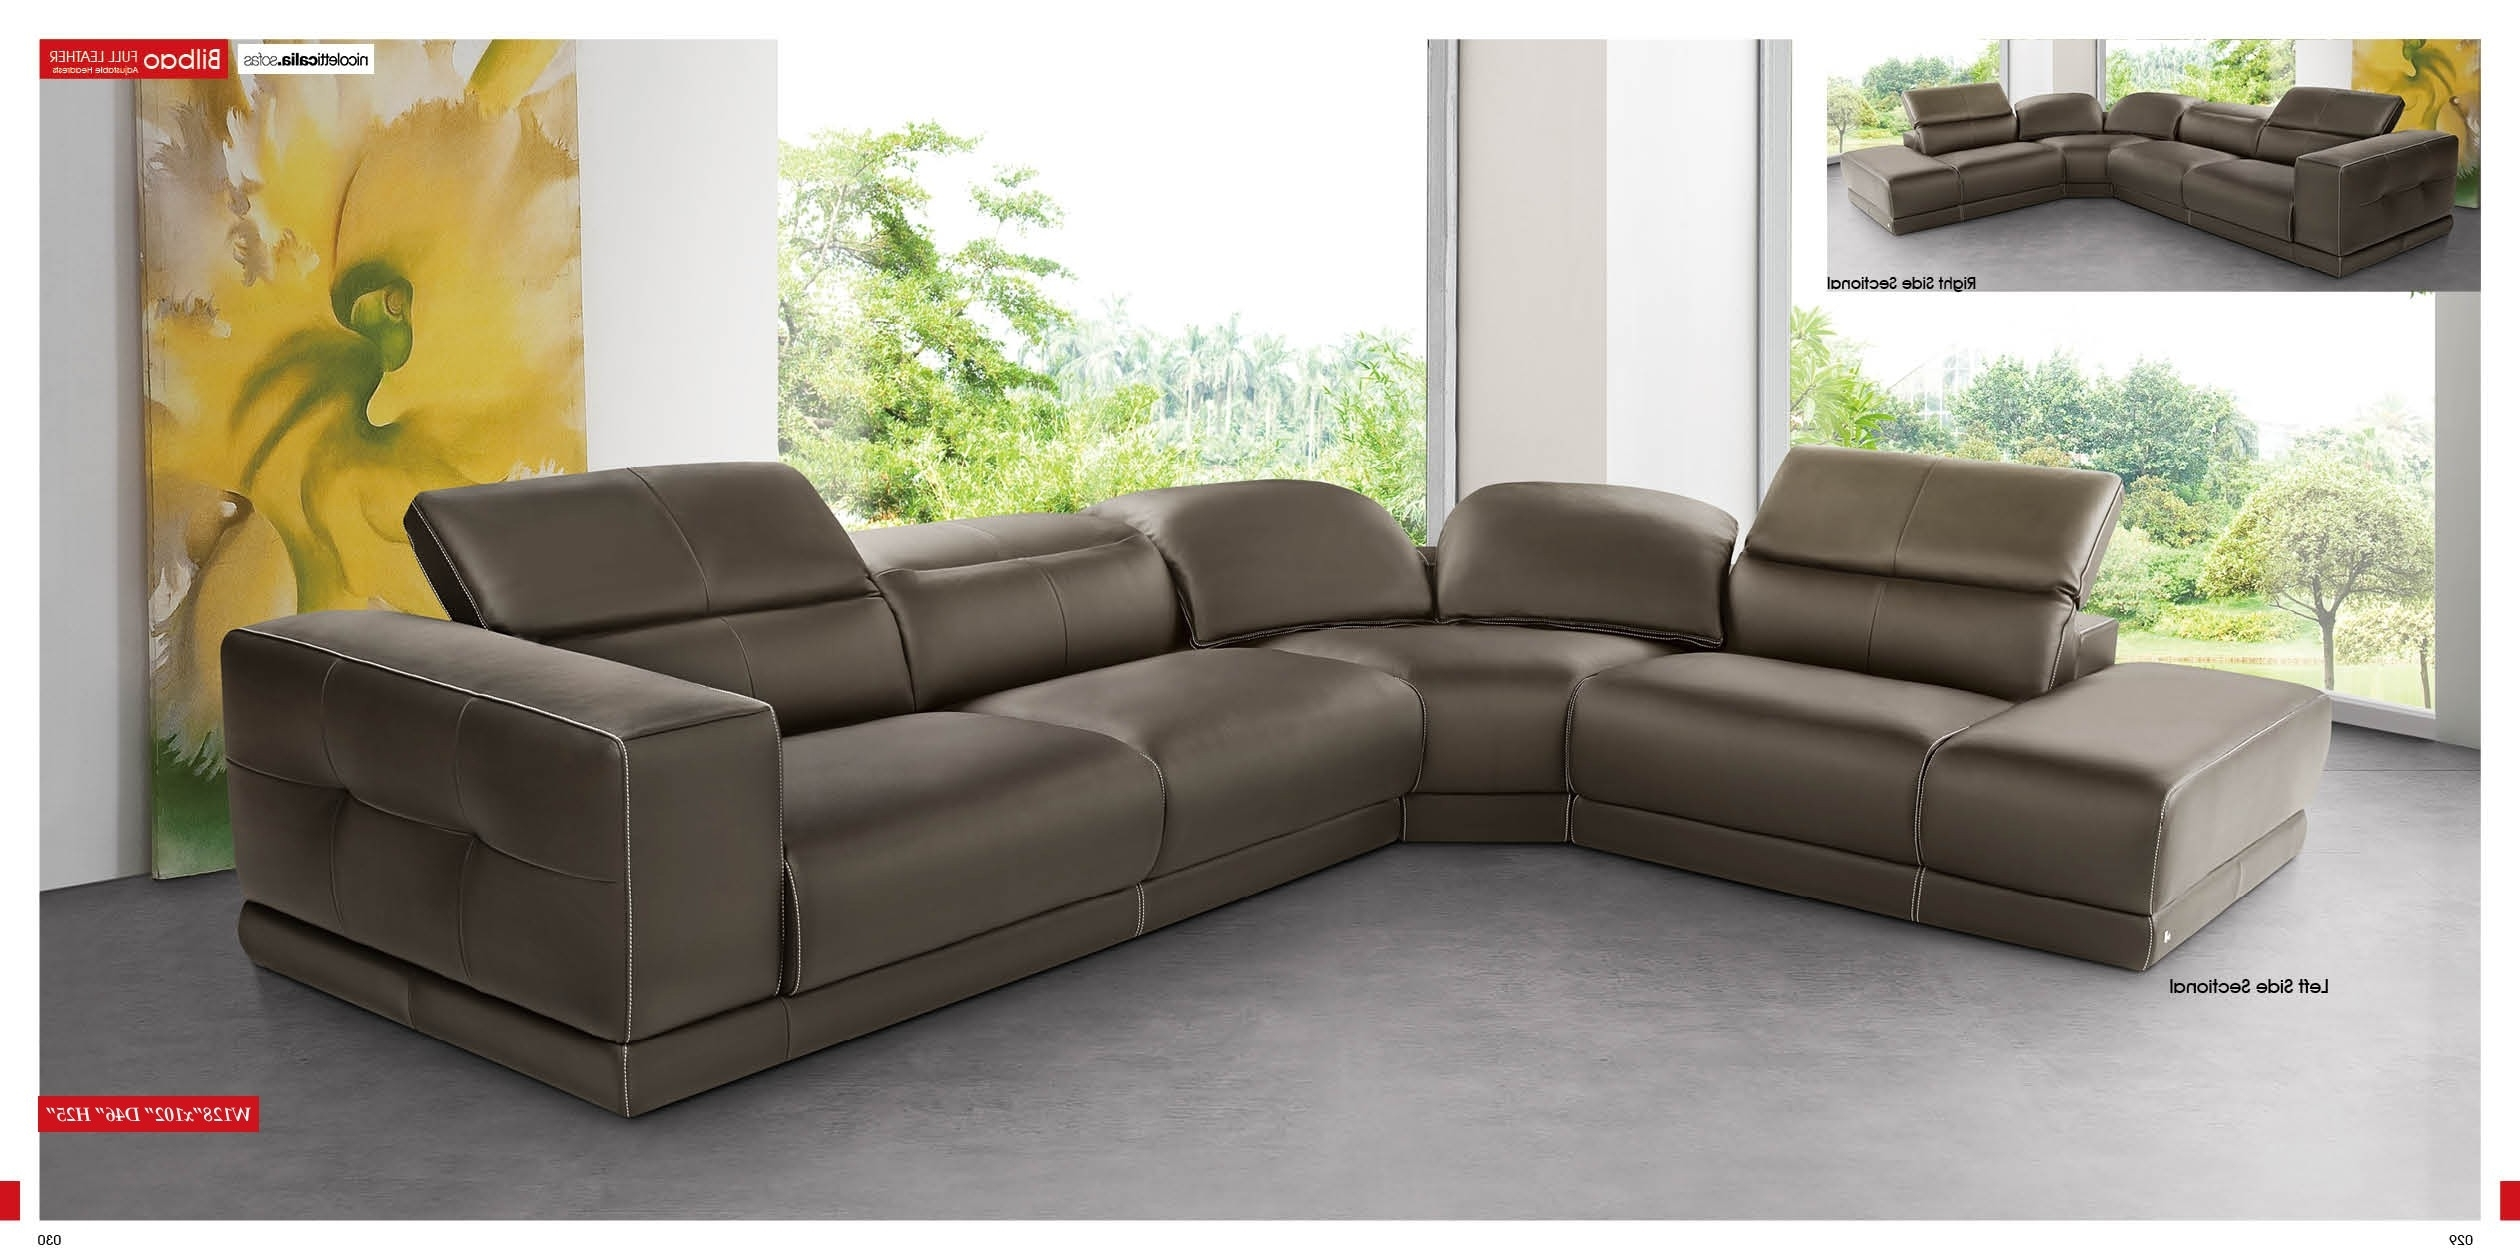 Trendy Furniture : Sectional Sofa 80 Inches 170 Cm Corner Sofa Recliner Pertaining To Sectional Sofas In Greenville Sc (View 18 of 20)